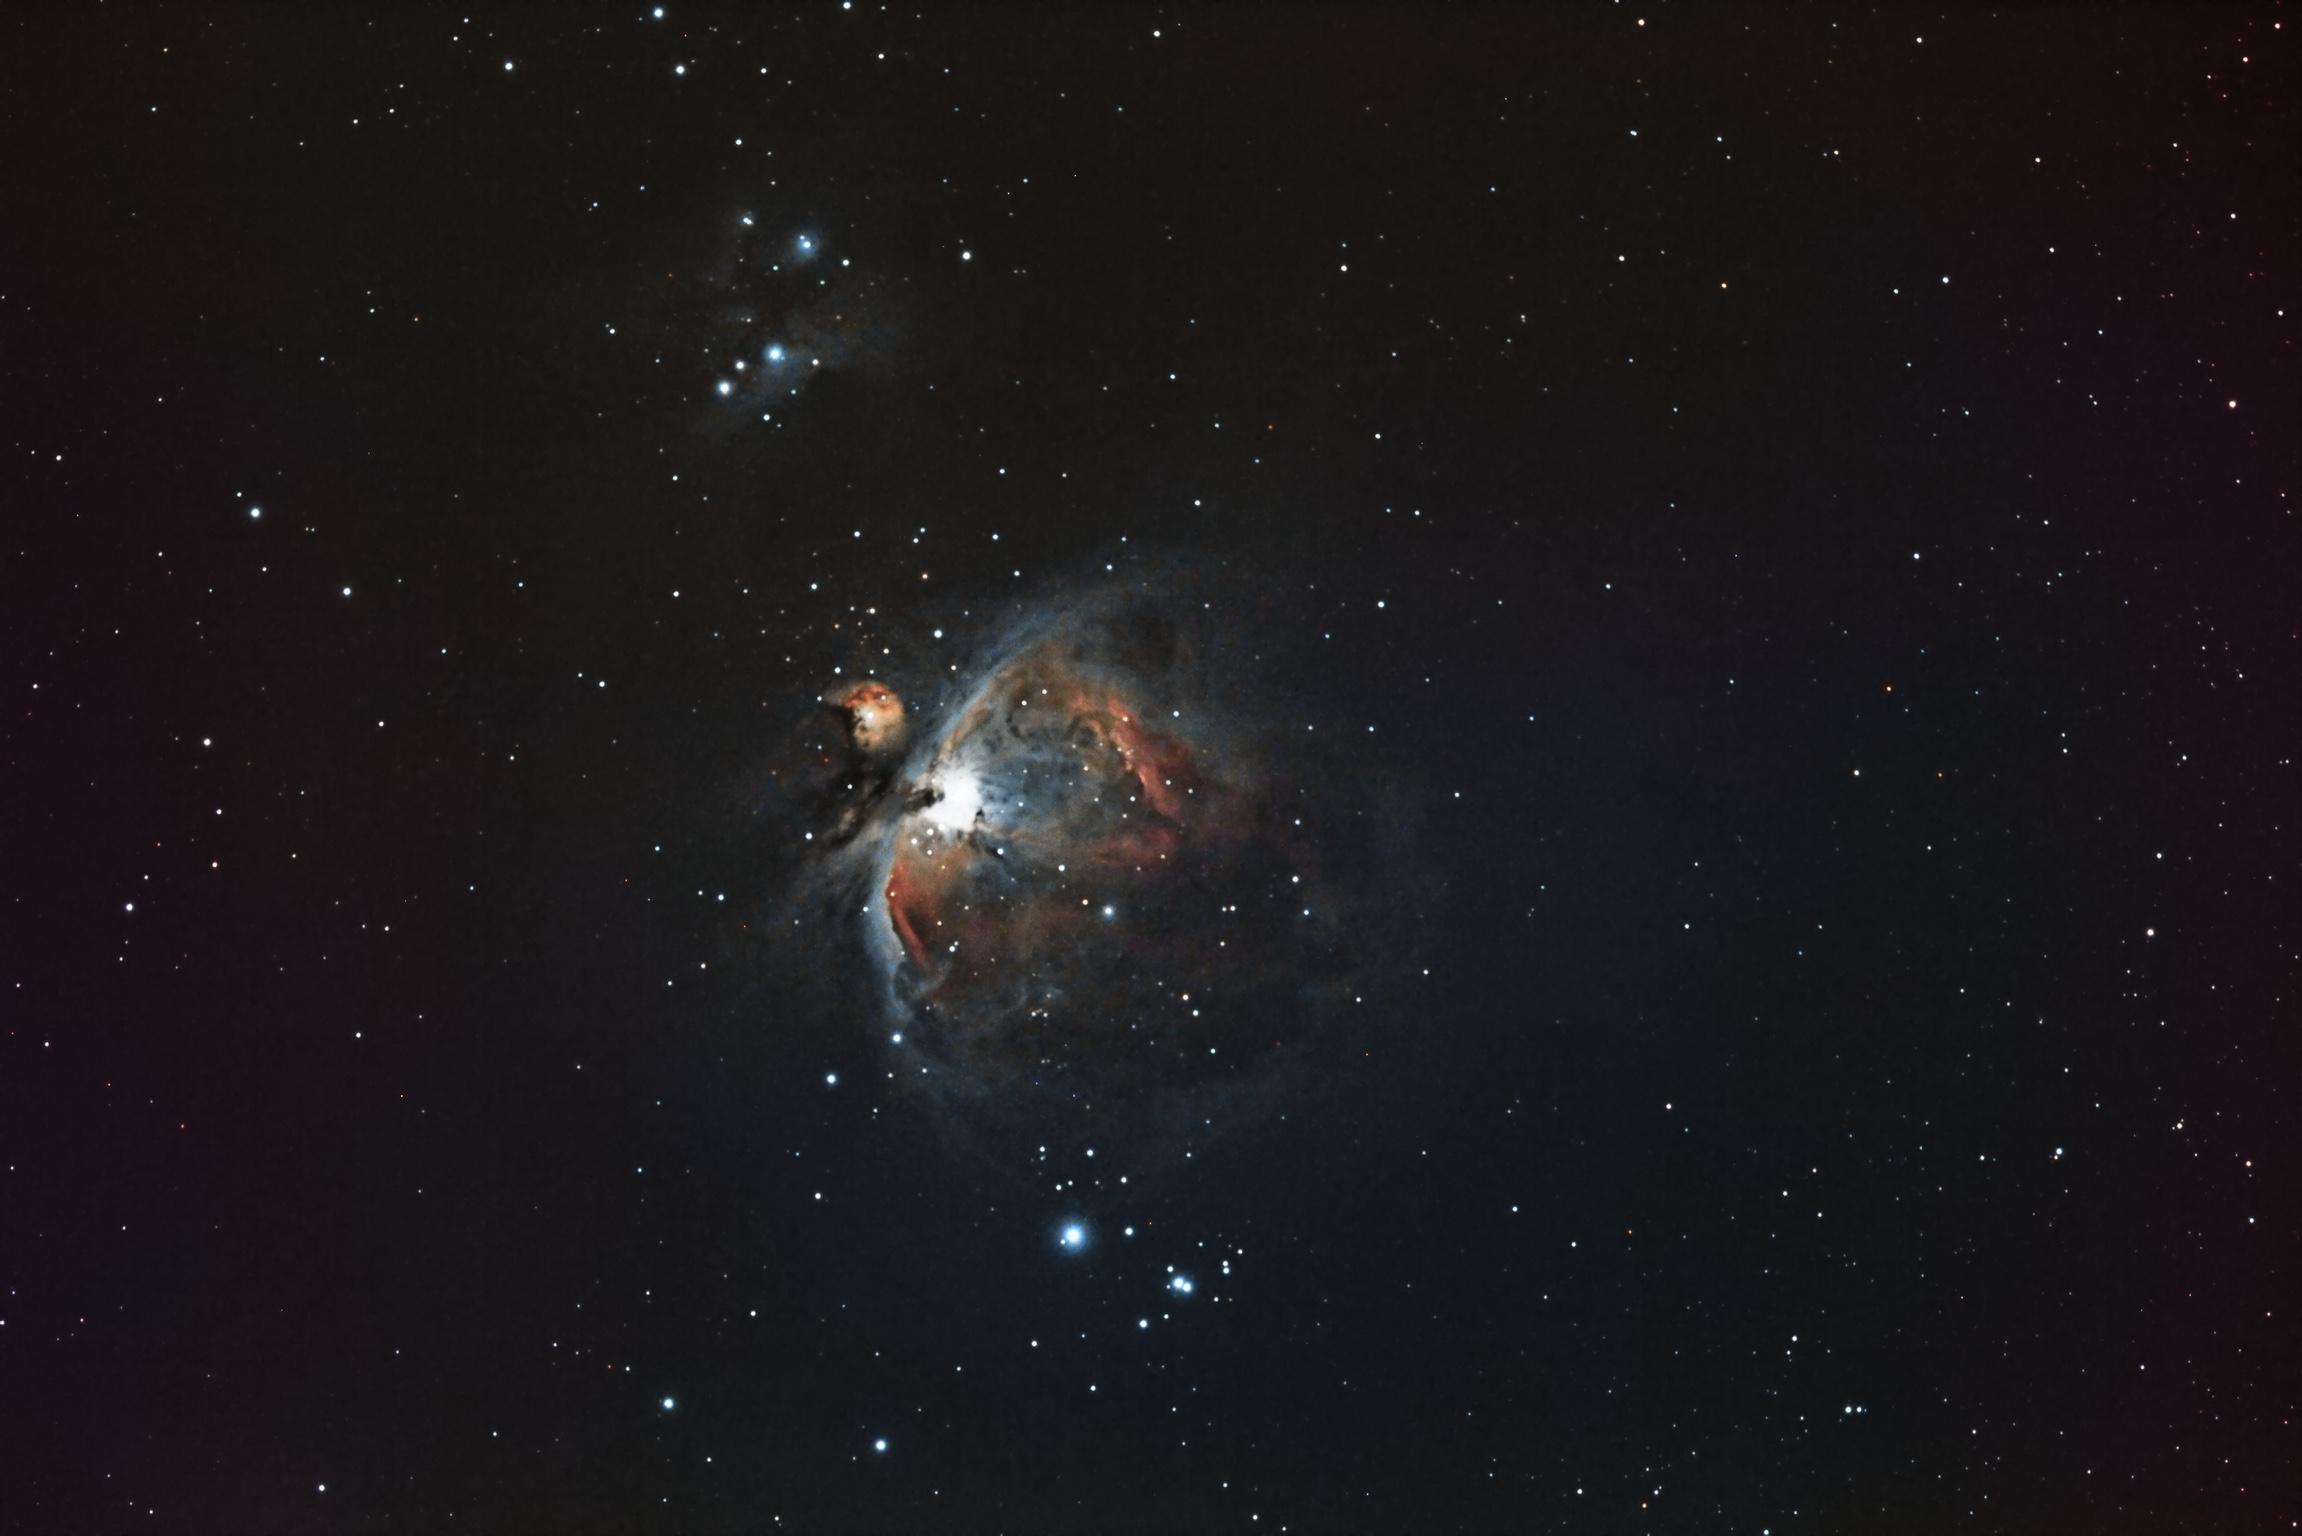 M42 - Orion-Nebel